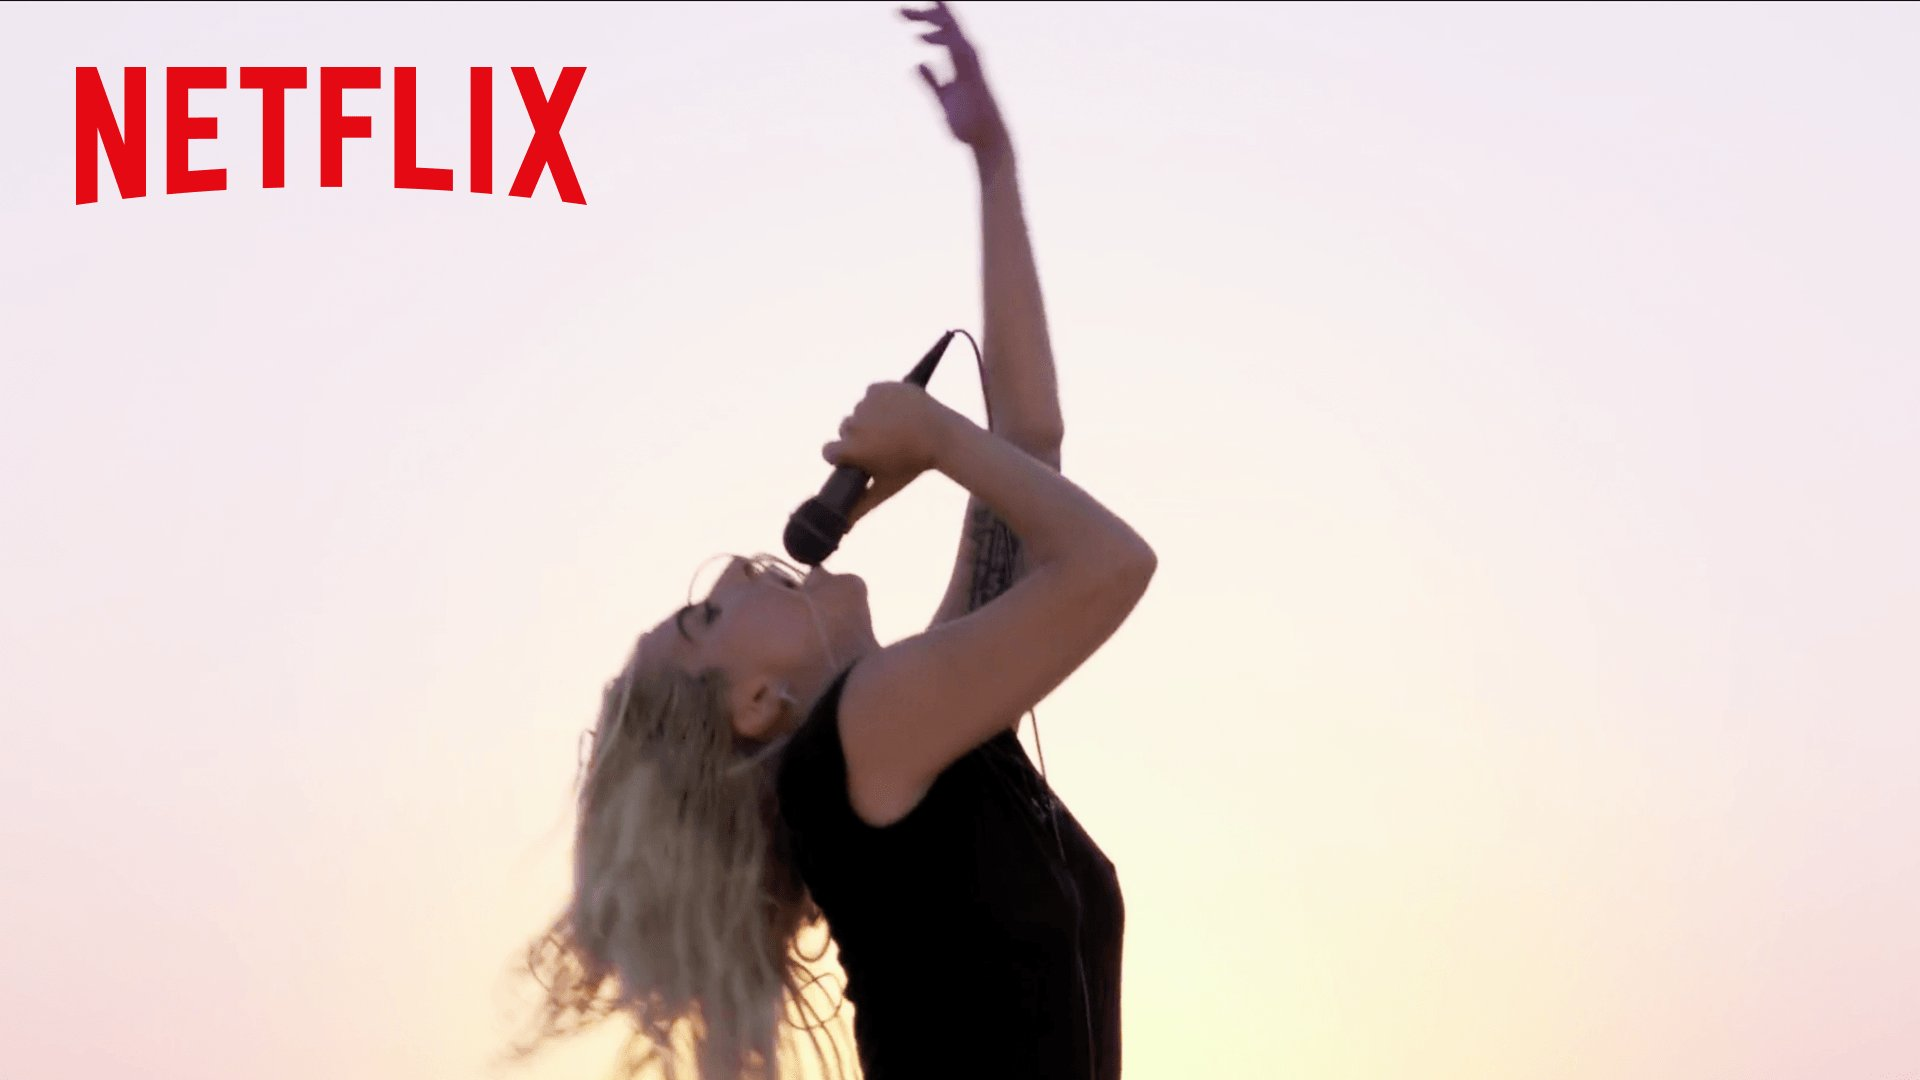 Put your paws up, mother monster is nearly here. #GagaFiveFootTwo, Sept 22 only on Netflix. https://t.co/n5C9IVR2Ai